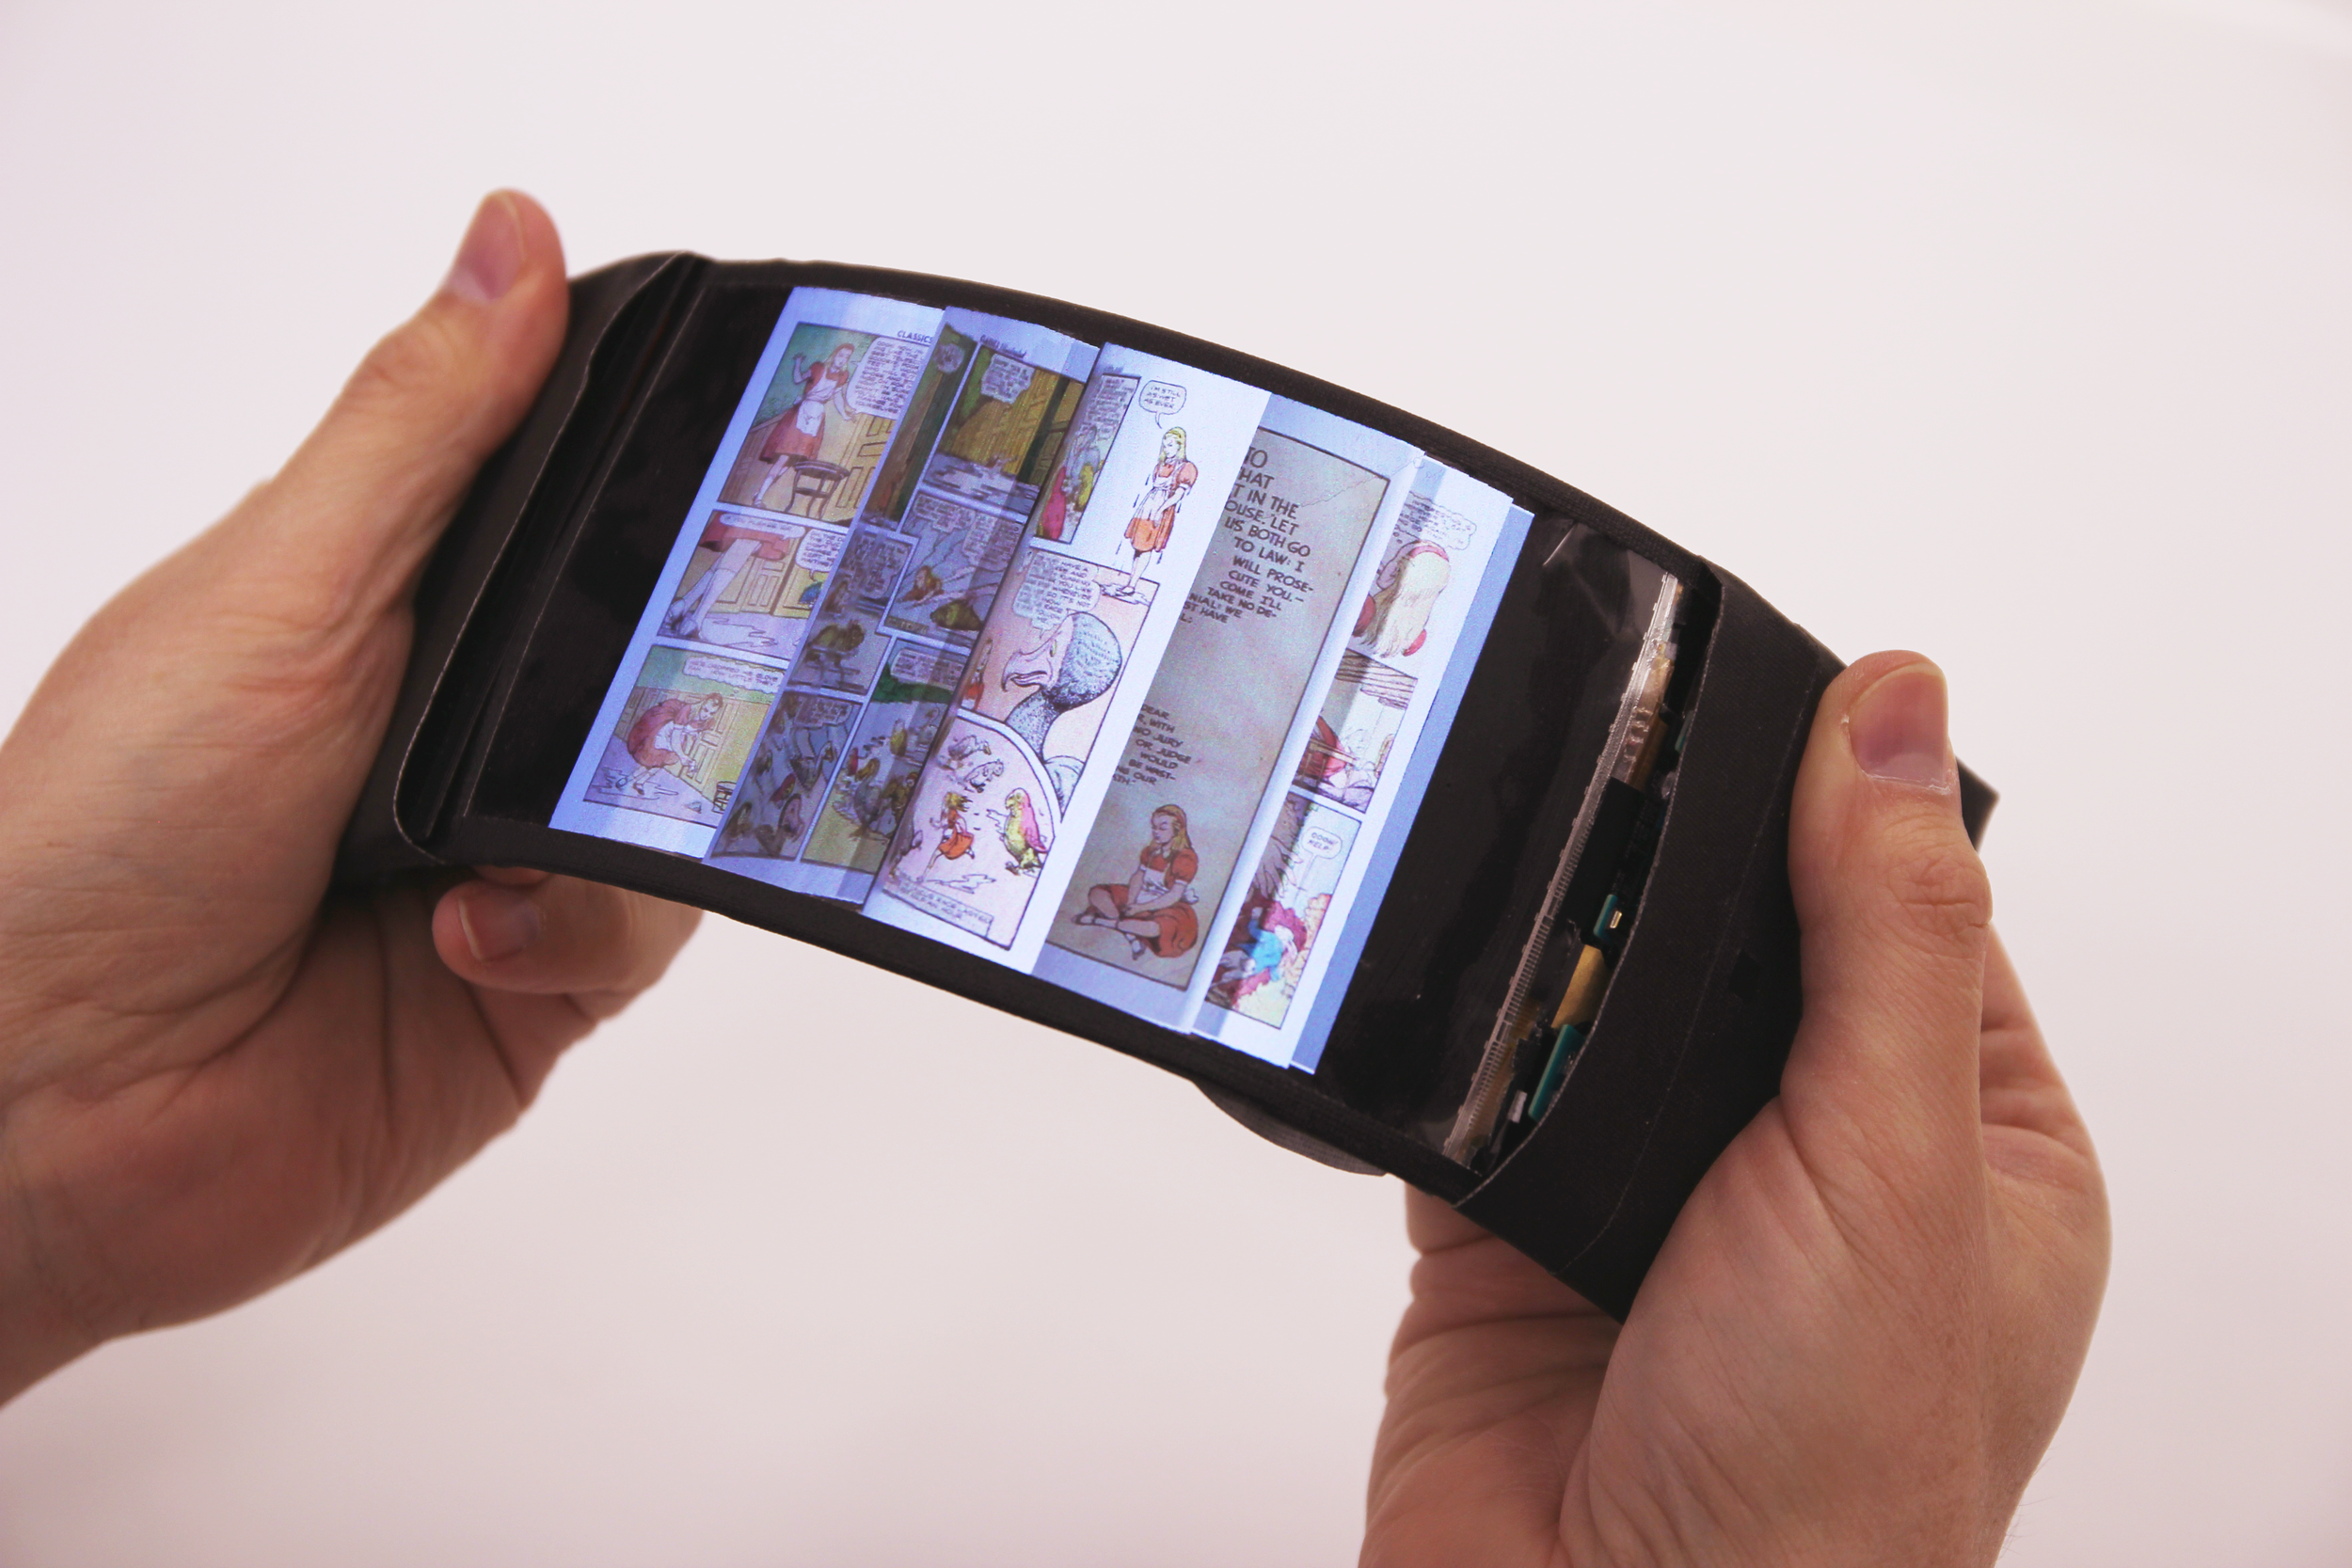 ReFlex (2016): User navigating pages by bending the smartphone; feels pages flip through fingers.